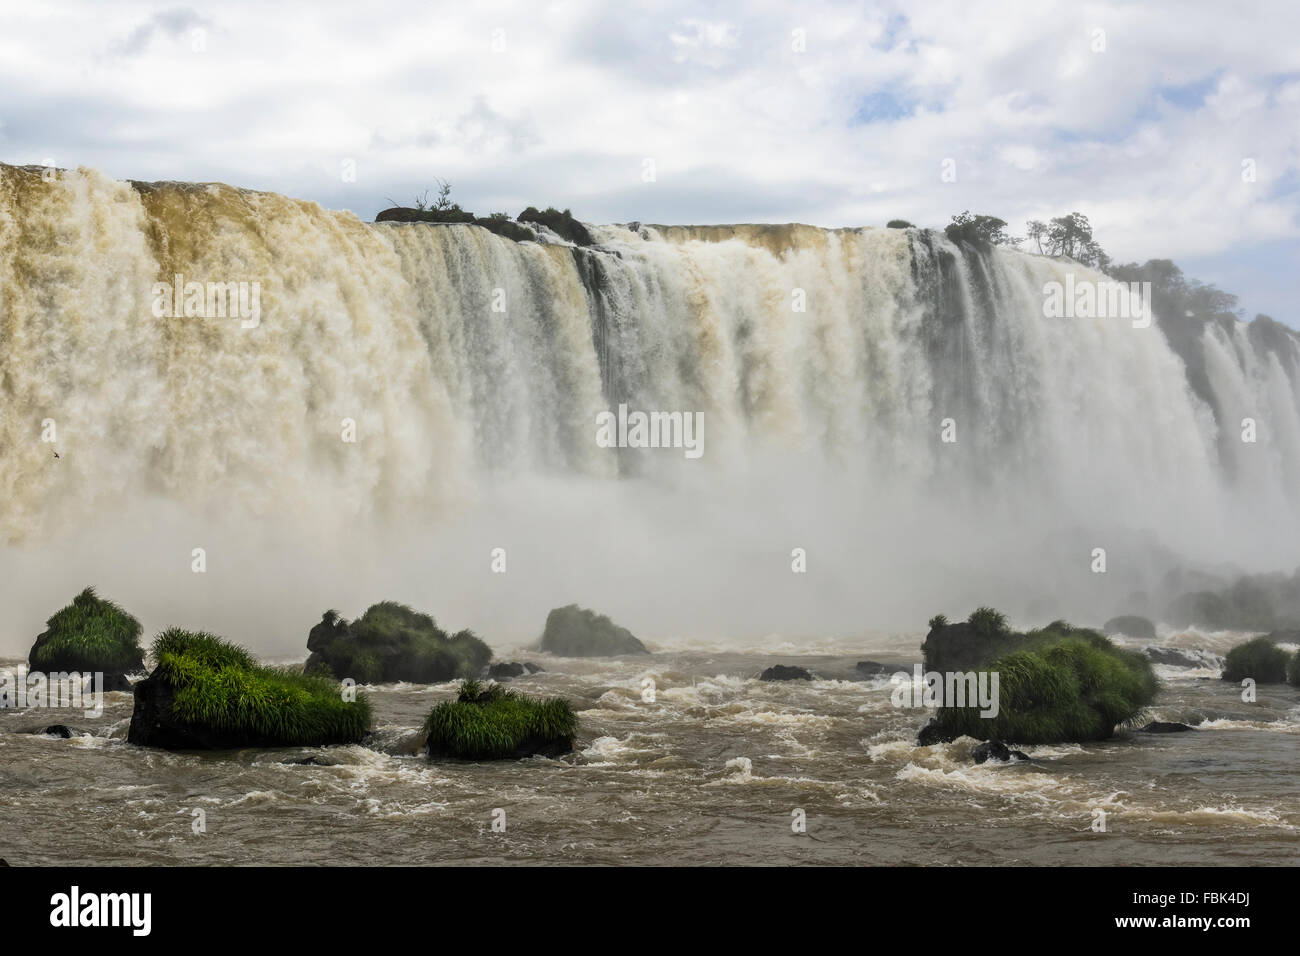 Foz do Iguacu, Brazil side near the walkway to Devil's Throat - Stock Image